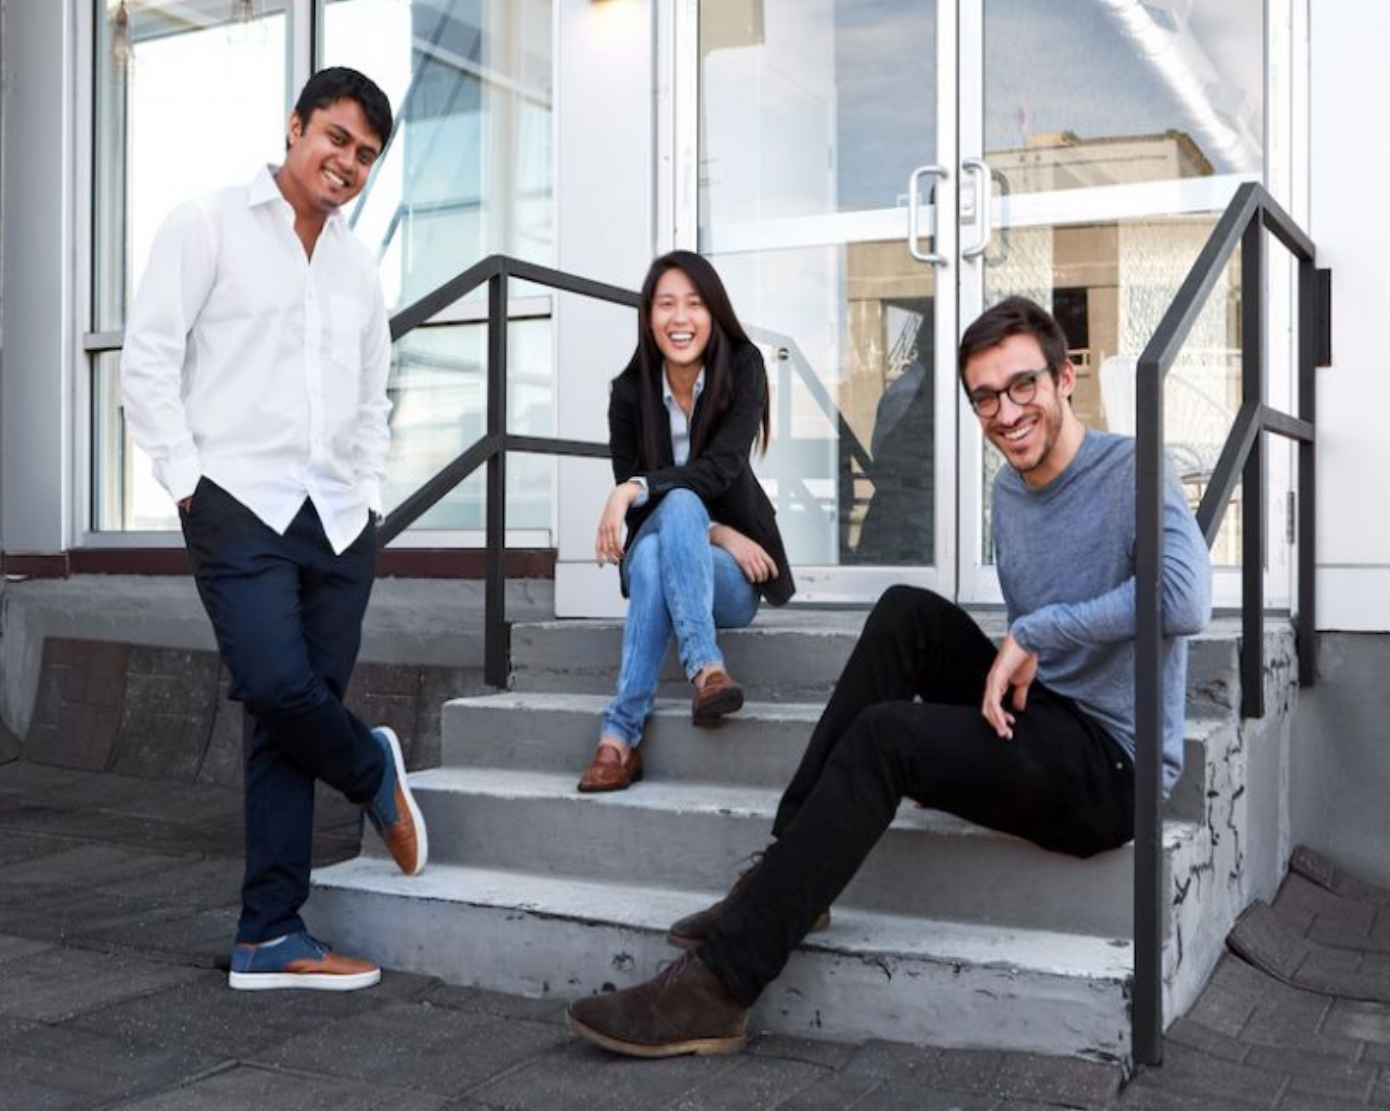 SPRING HEALTH - forbes - Spring Health announces $6M funding round raised from female VCs